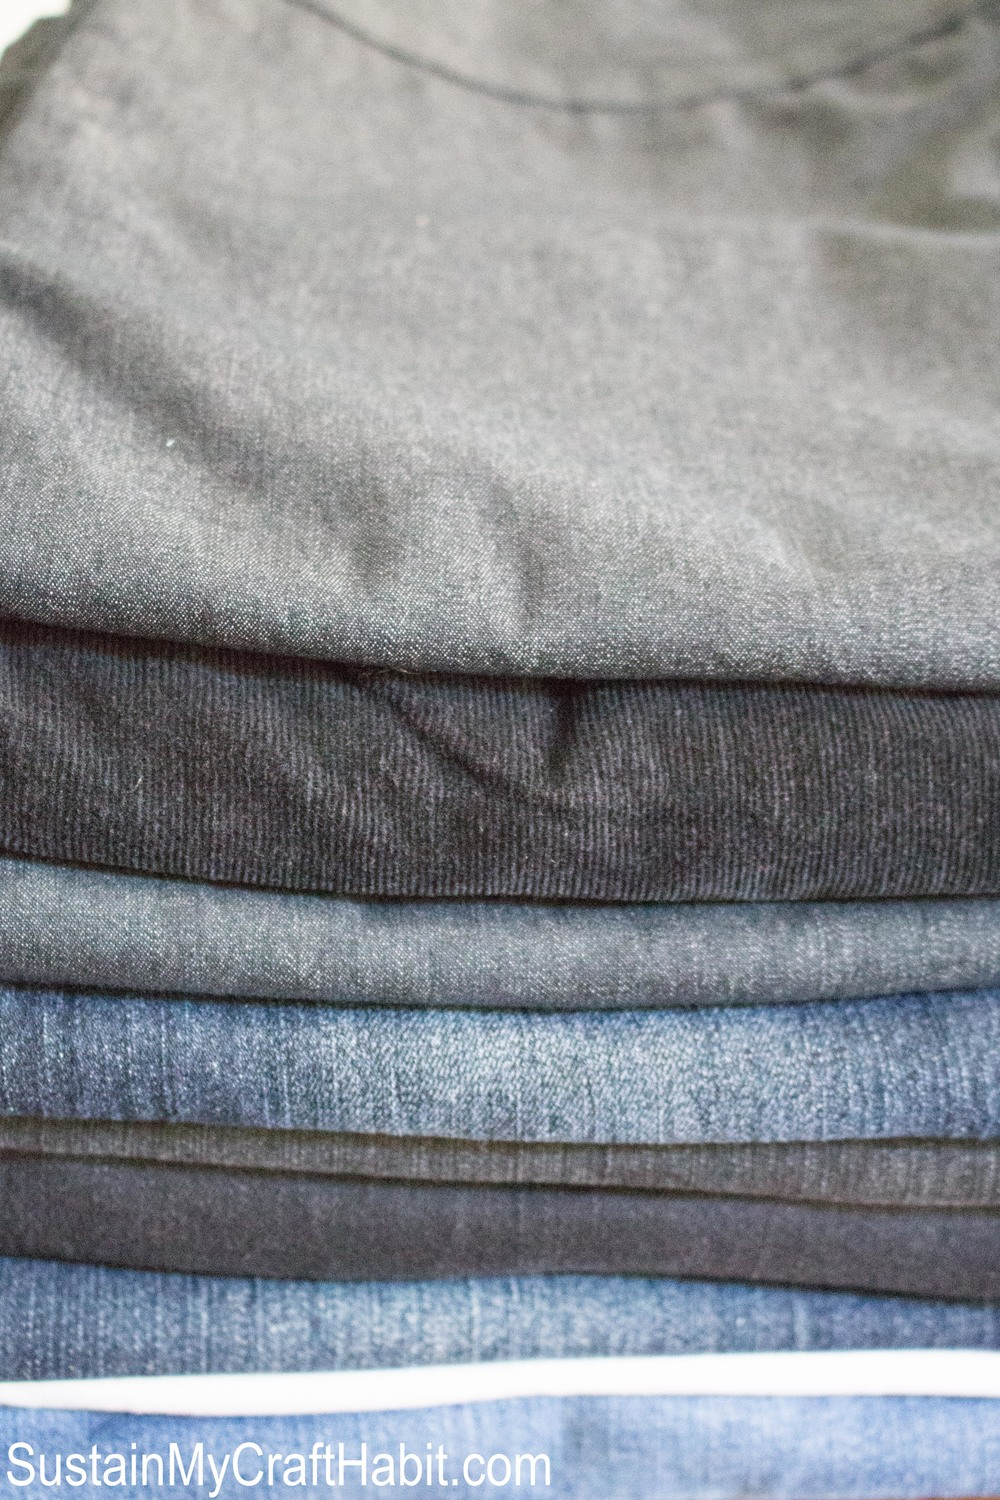 Close up view of a stack of old jeans showing different shades of blue and gray denim fabric.